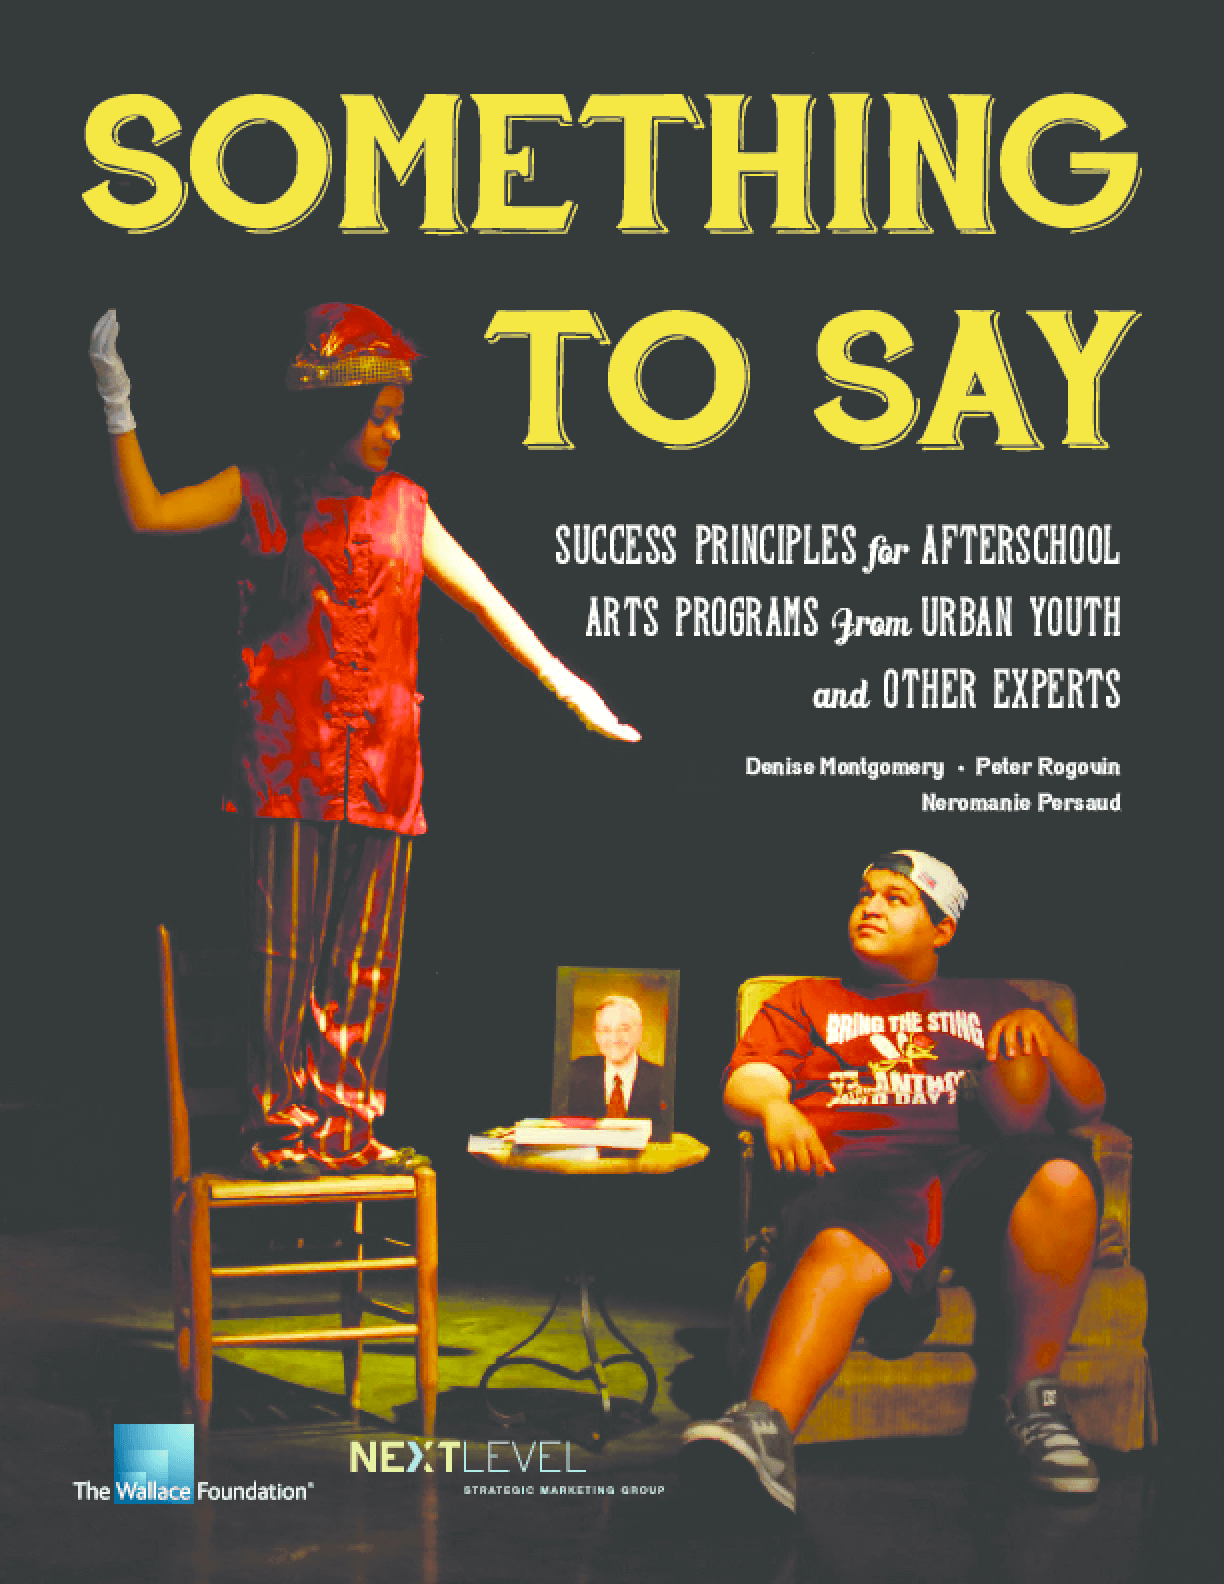 Something to Say: Success Principles for Afterschool Arts Programs From Urban Youth and Other Experts